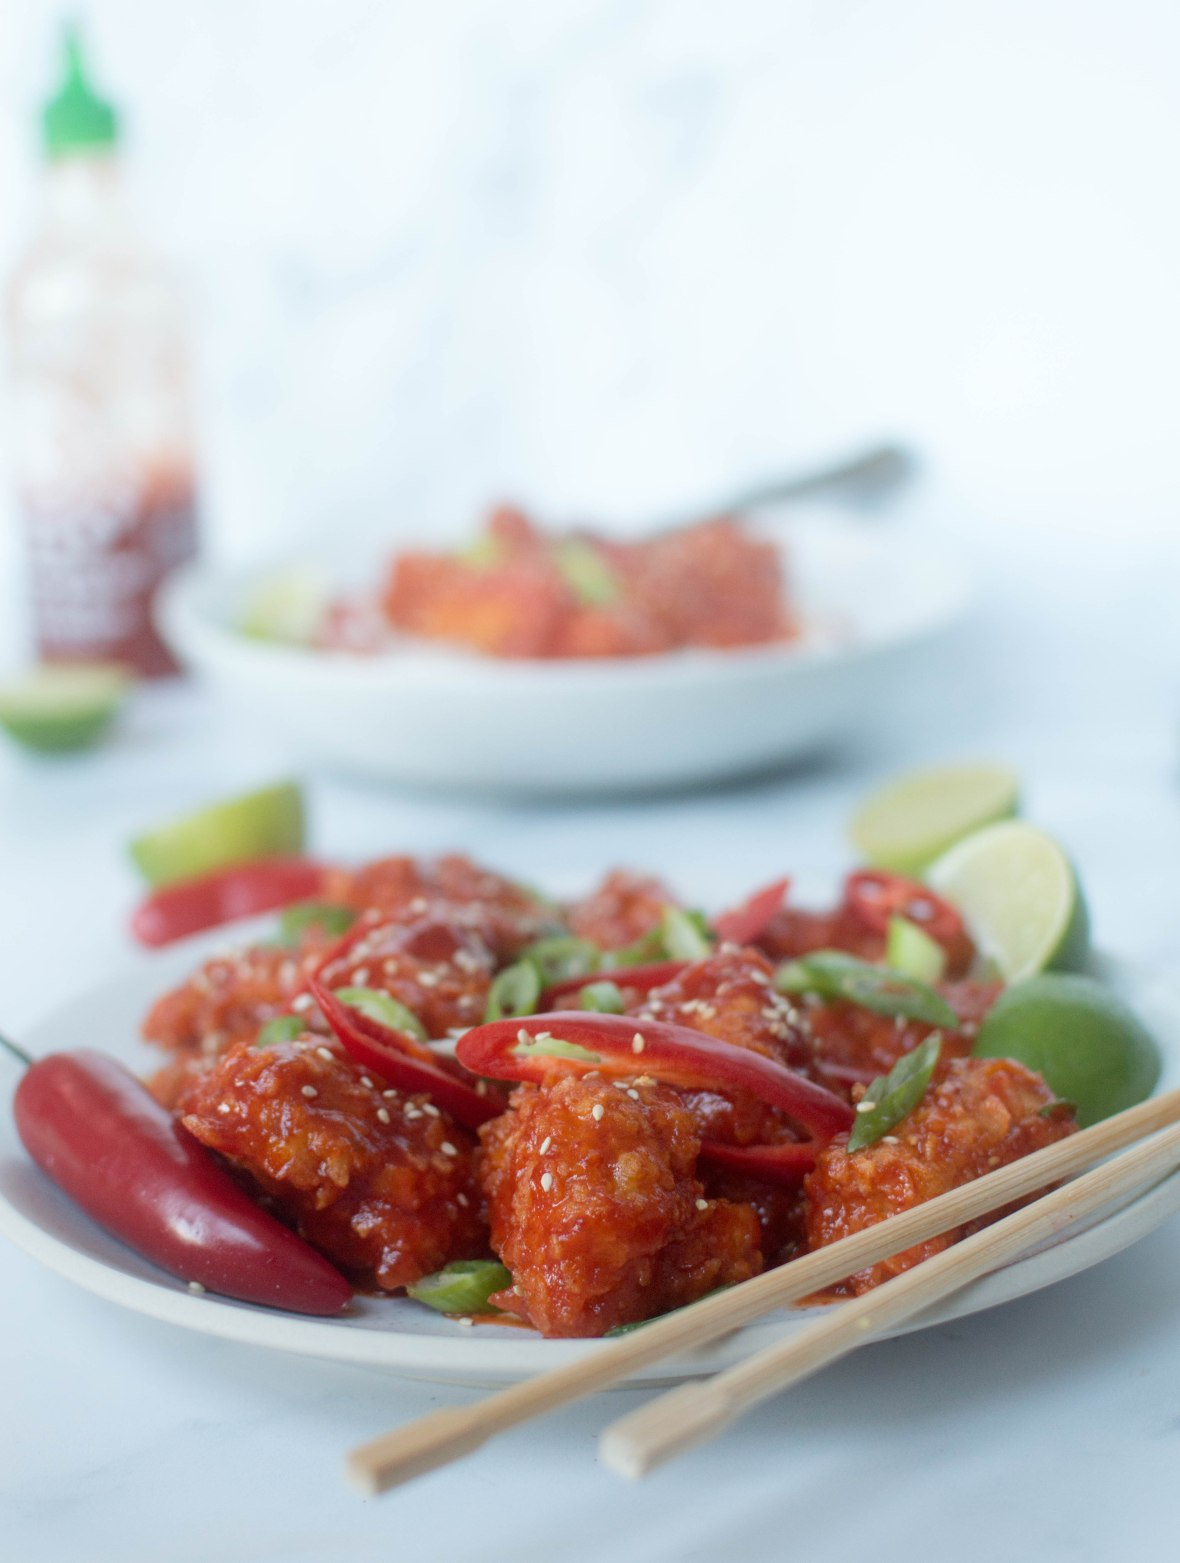 Sriracha, Maple Syrup & Lime Crunchy Chicken - Kay's Kitchen